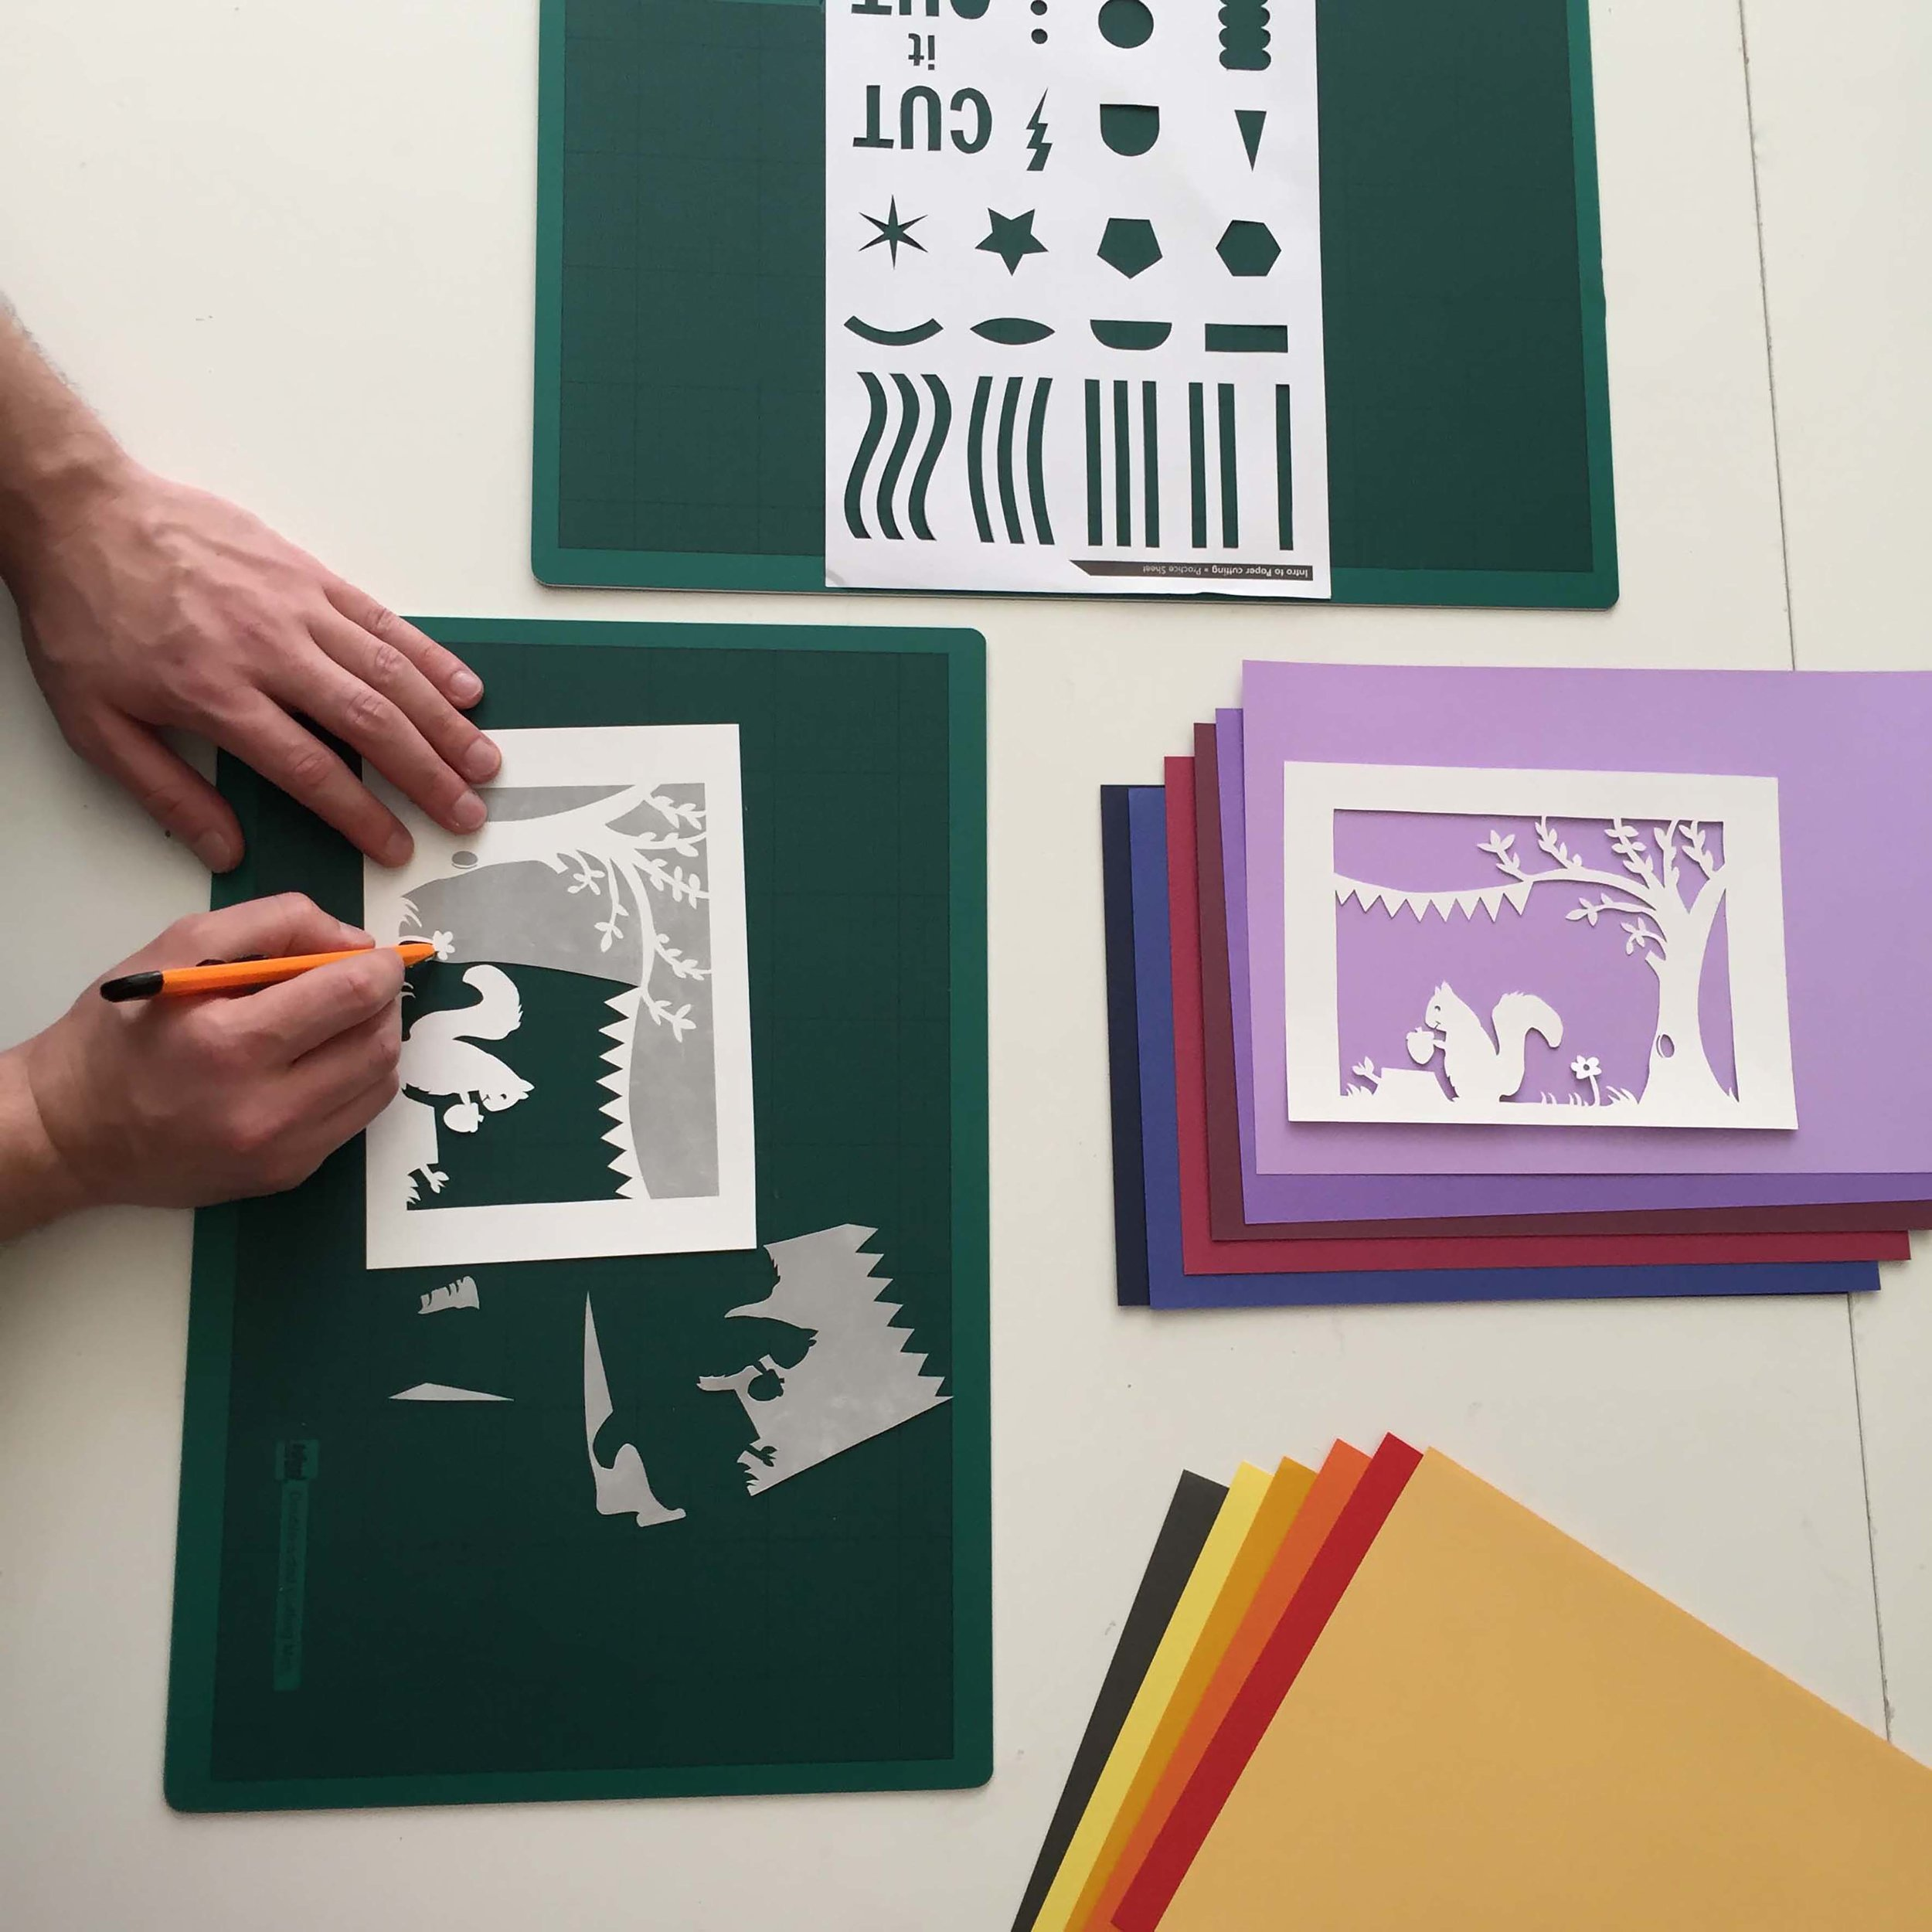 Papercut Class with Kip Perdue - 11.00 - 12.00Empress Mews Studios, 6 Empress Mews, Off Kenbury Street, SE5 9BTThis event covers a guided approach to techniques, the best tools, materials and templates. You'll walk away with a better understanding of how to approach a paper cut project, what to use and how. There will be several small practice pieces to take home with you. You must be at minimum 18 years old or accompanied by an adult.£15 - BOOK HERE